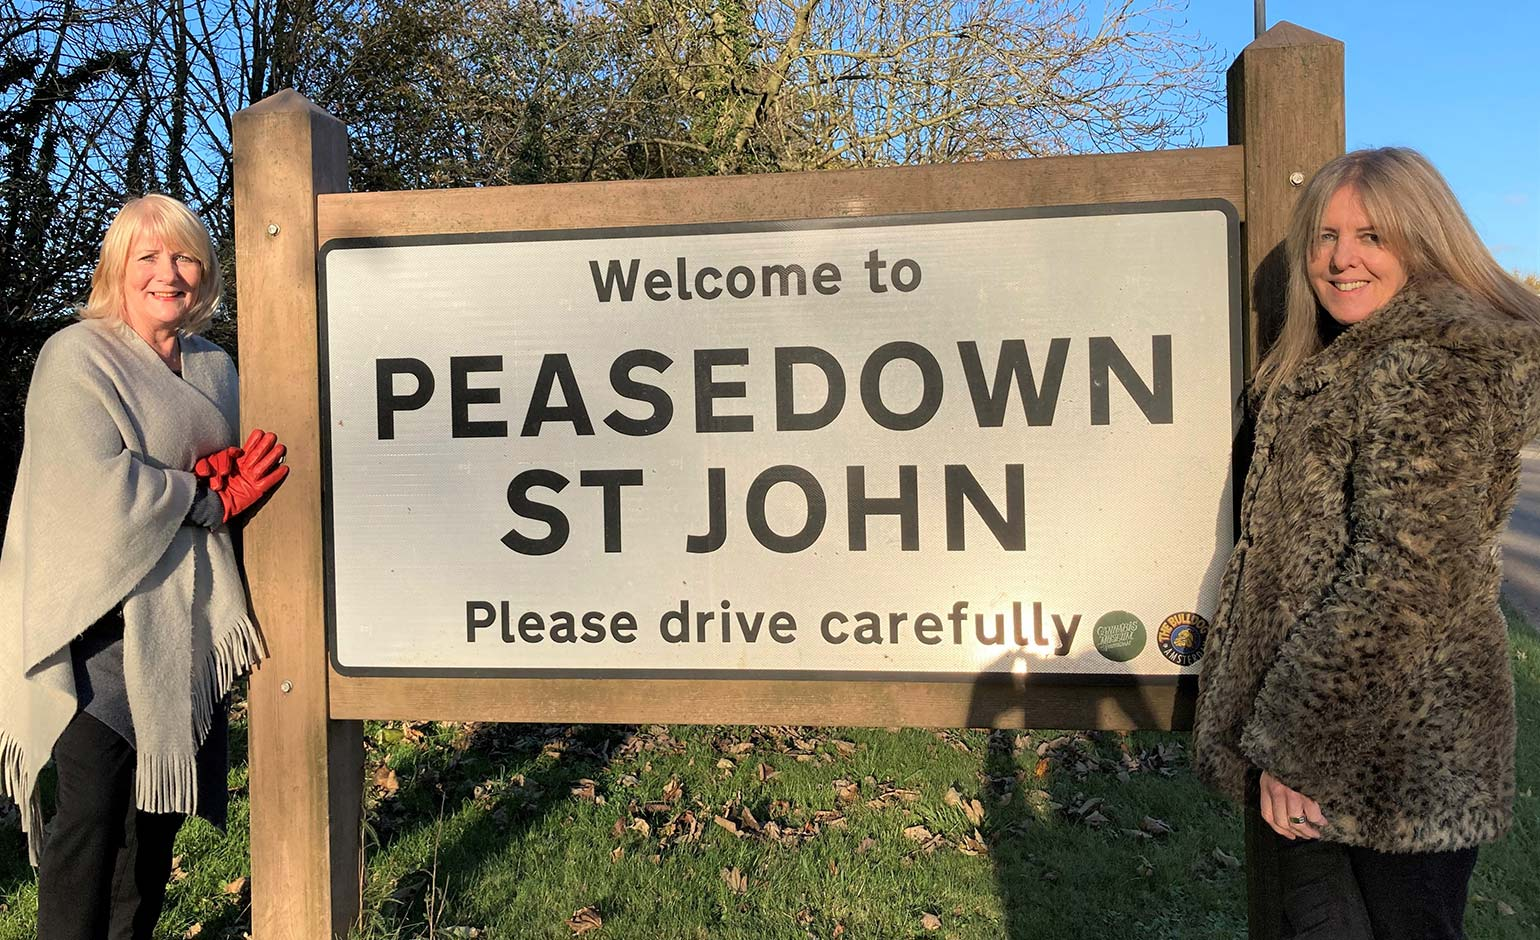 Councillors call for vaccination centre to be opened in Peasedown St John